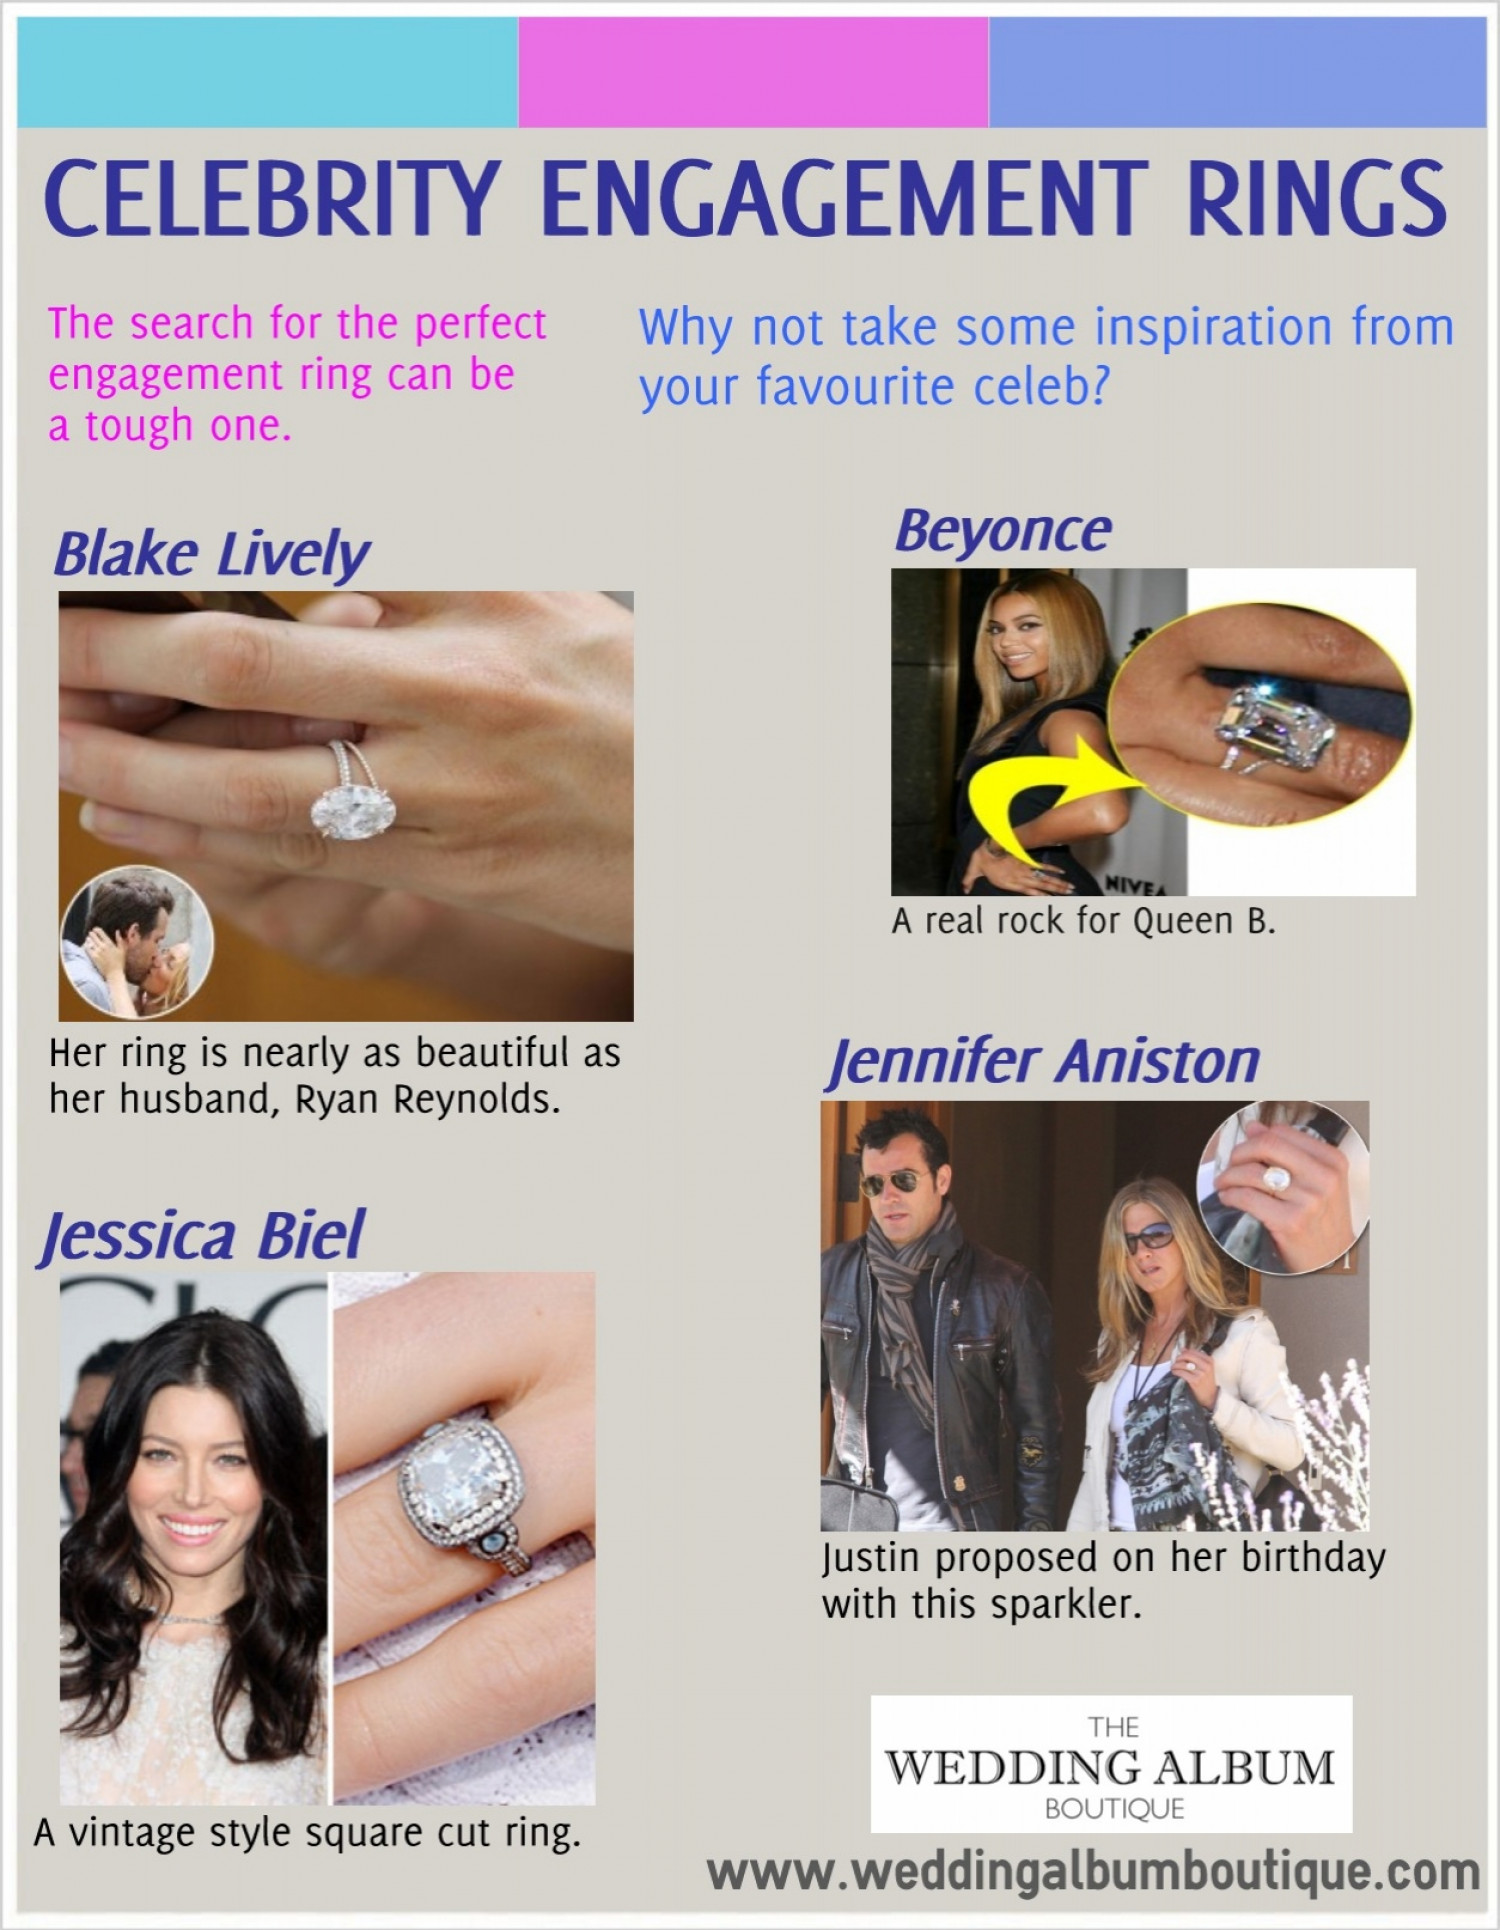 Celebrity Engagement Rings Infographic